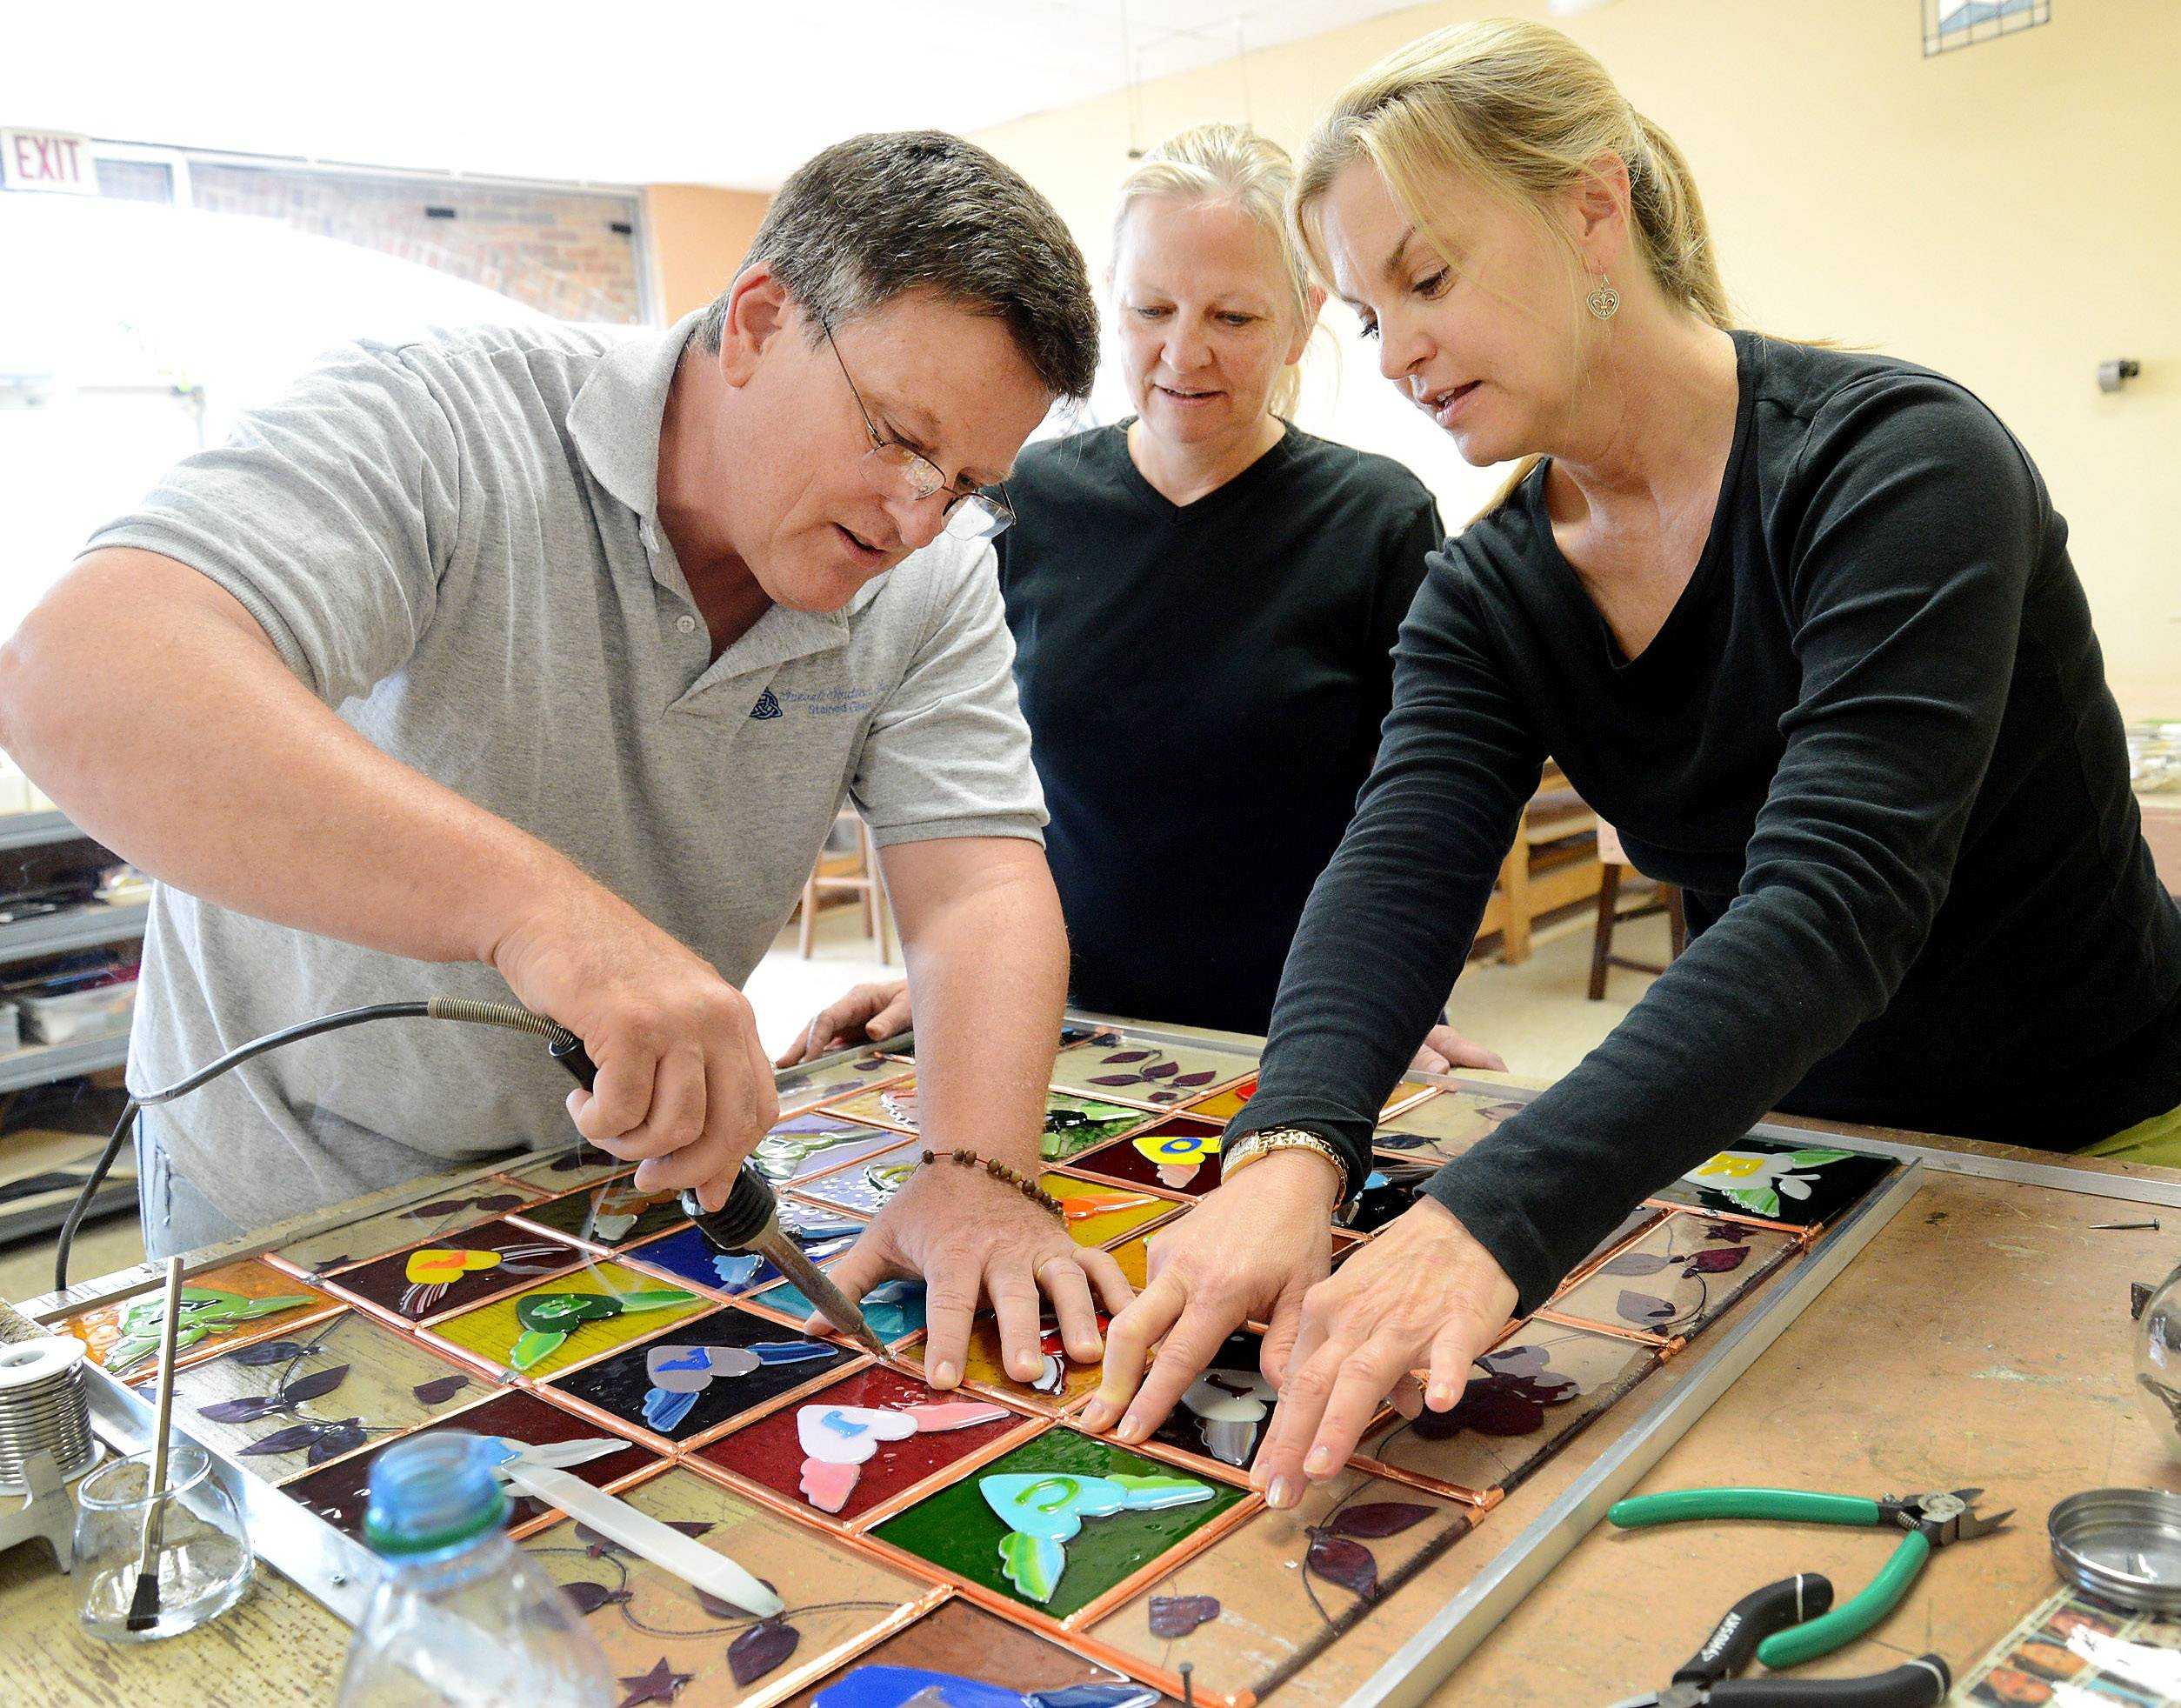 Patti Muller of New Orleans, right, is making a stained-glass quilt in remembrance of the 2012 Sandy Hook school shooting in Connecticut. Here, she works with Eric and Markay Suevel at their Arlington Heights glass studio.